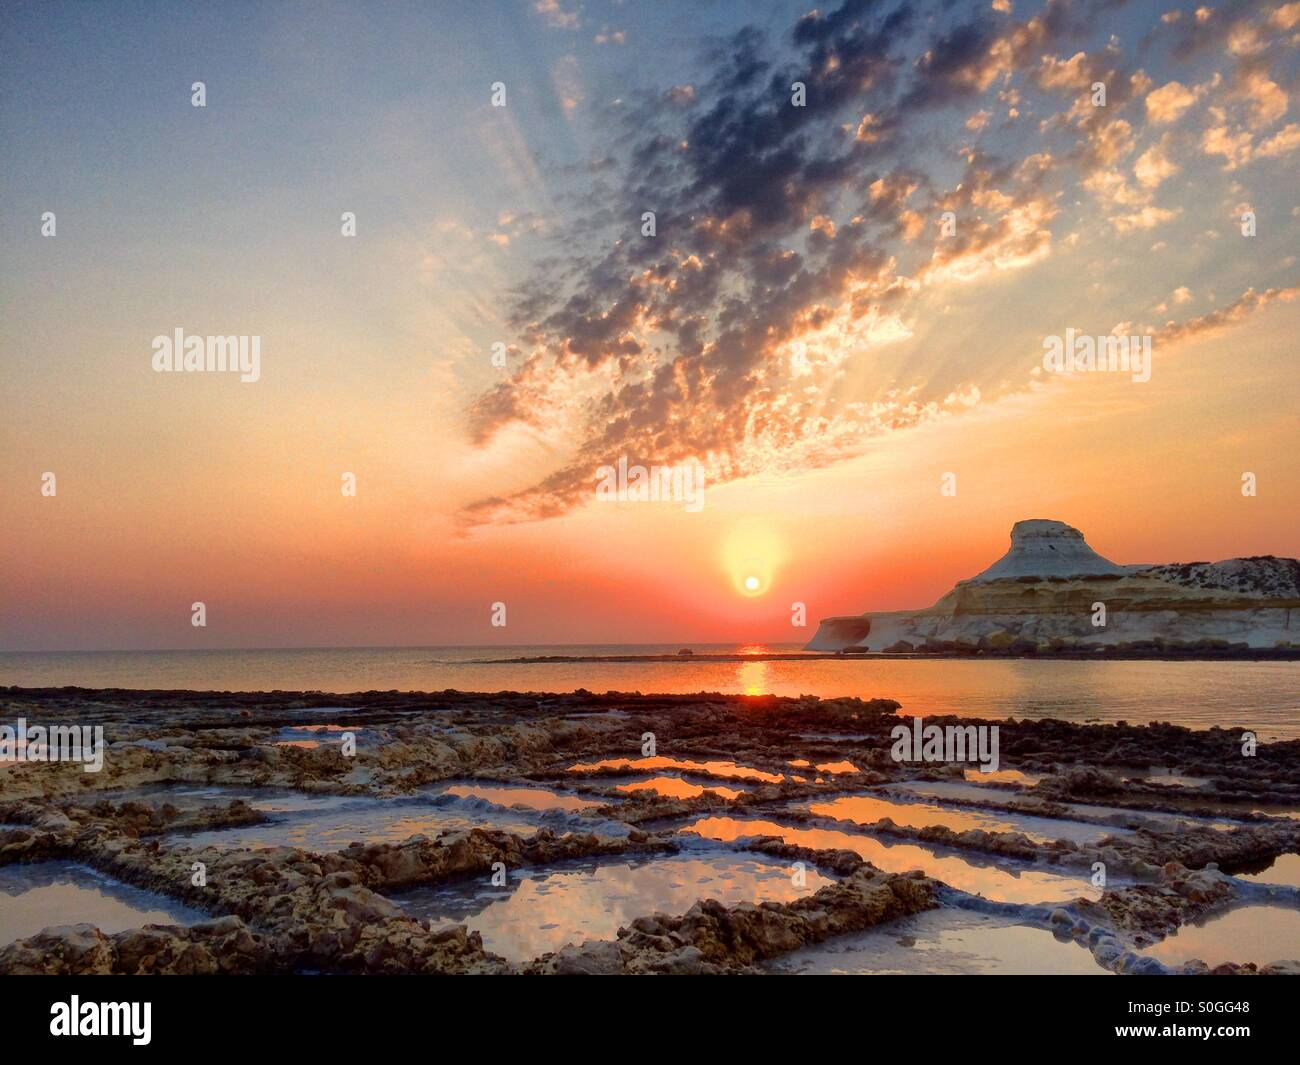 Sunrise over actively harvested salt pans - Stock Image